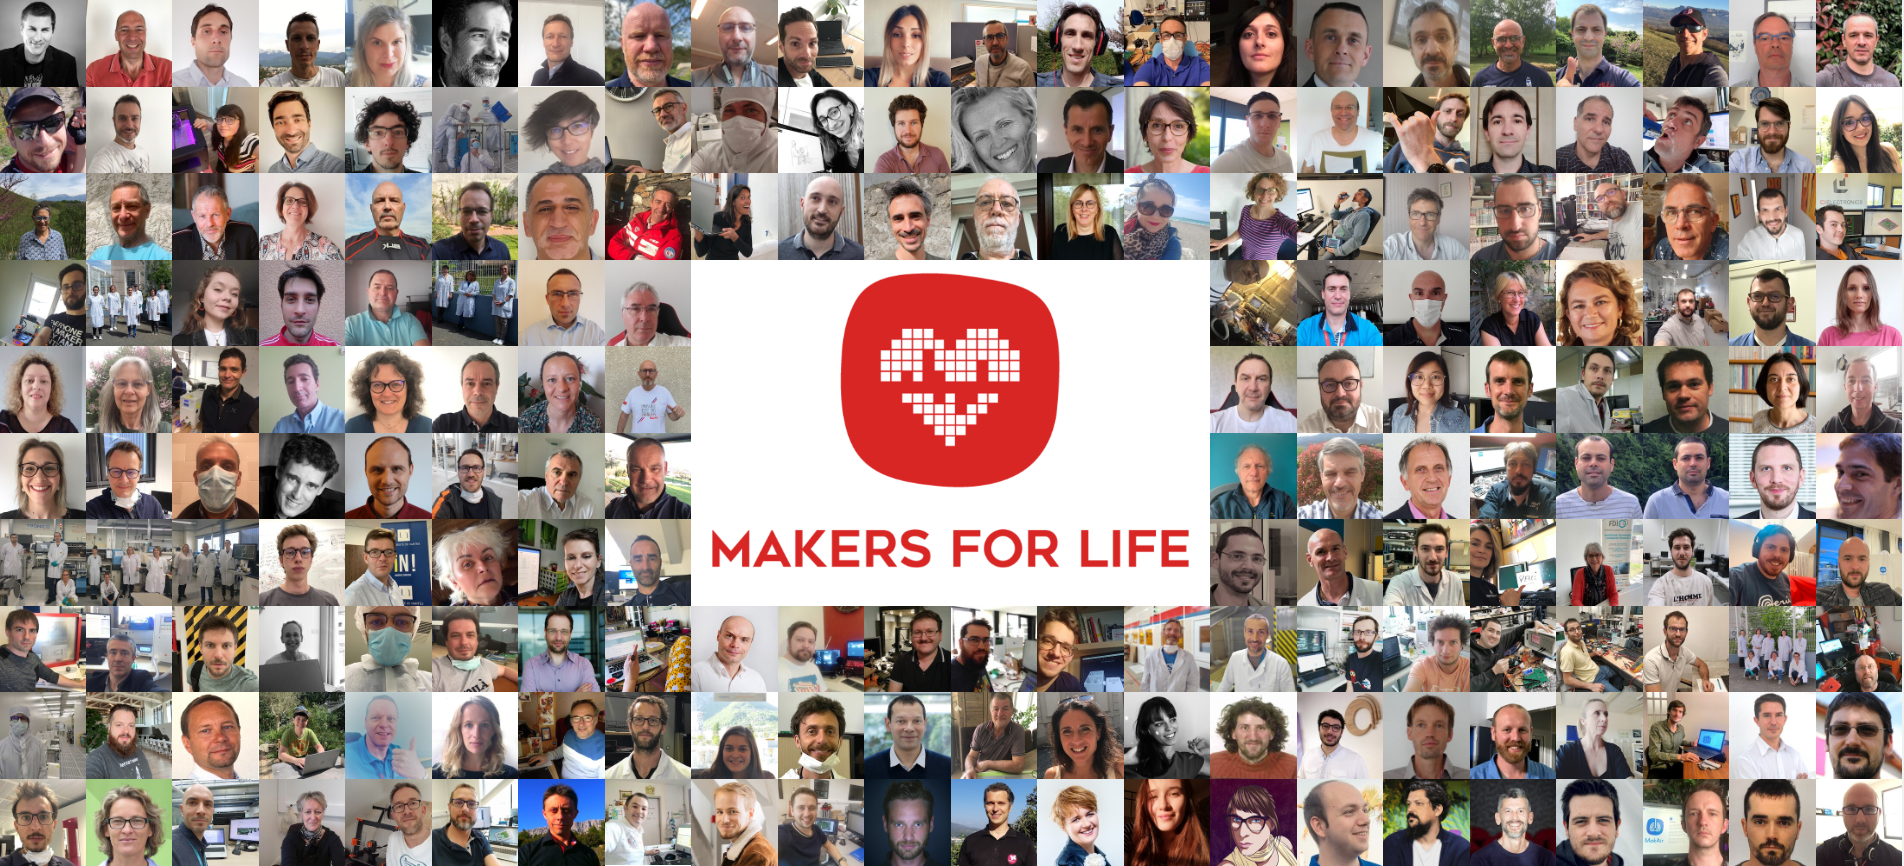 Makers For Life: The Making of a Collective